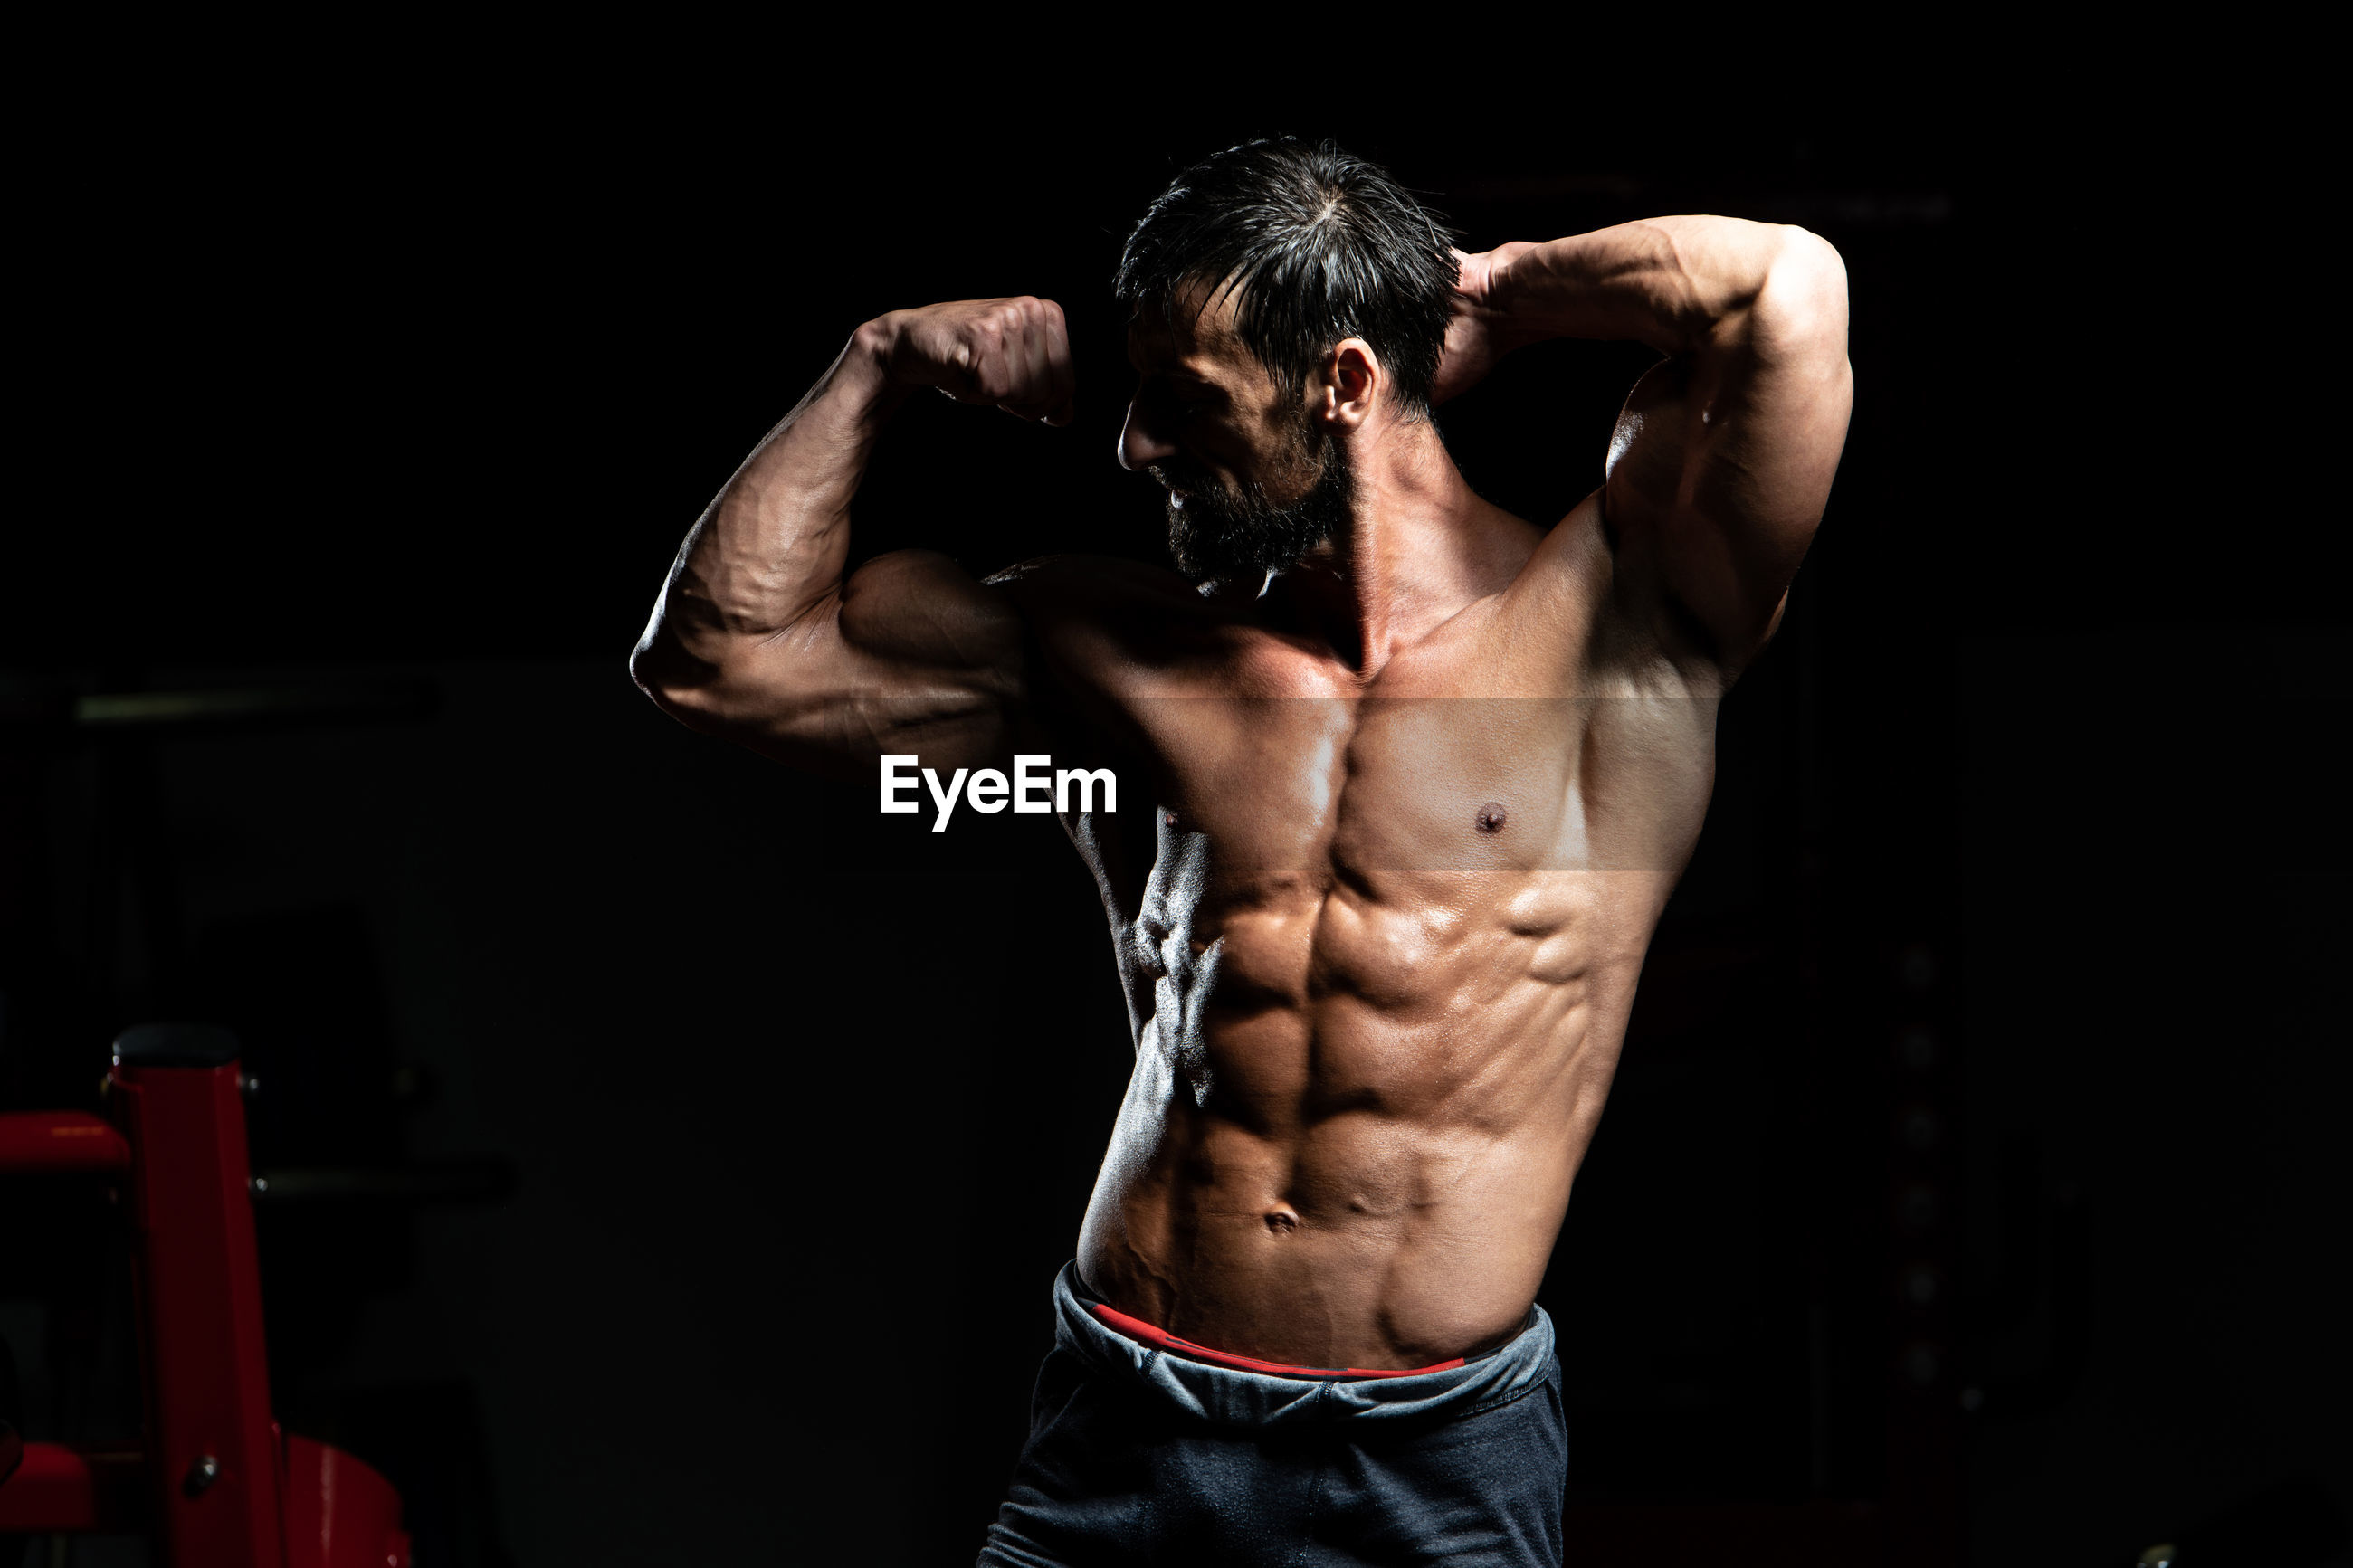 MIDSECTION OF SHIRTLESS MAN WITH ARMS OUTSTRETCHED